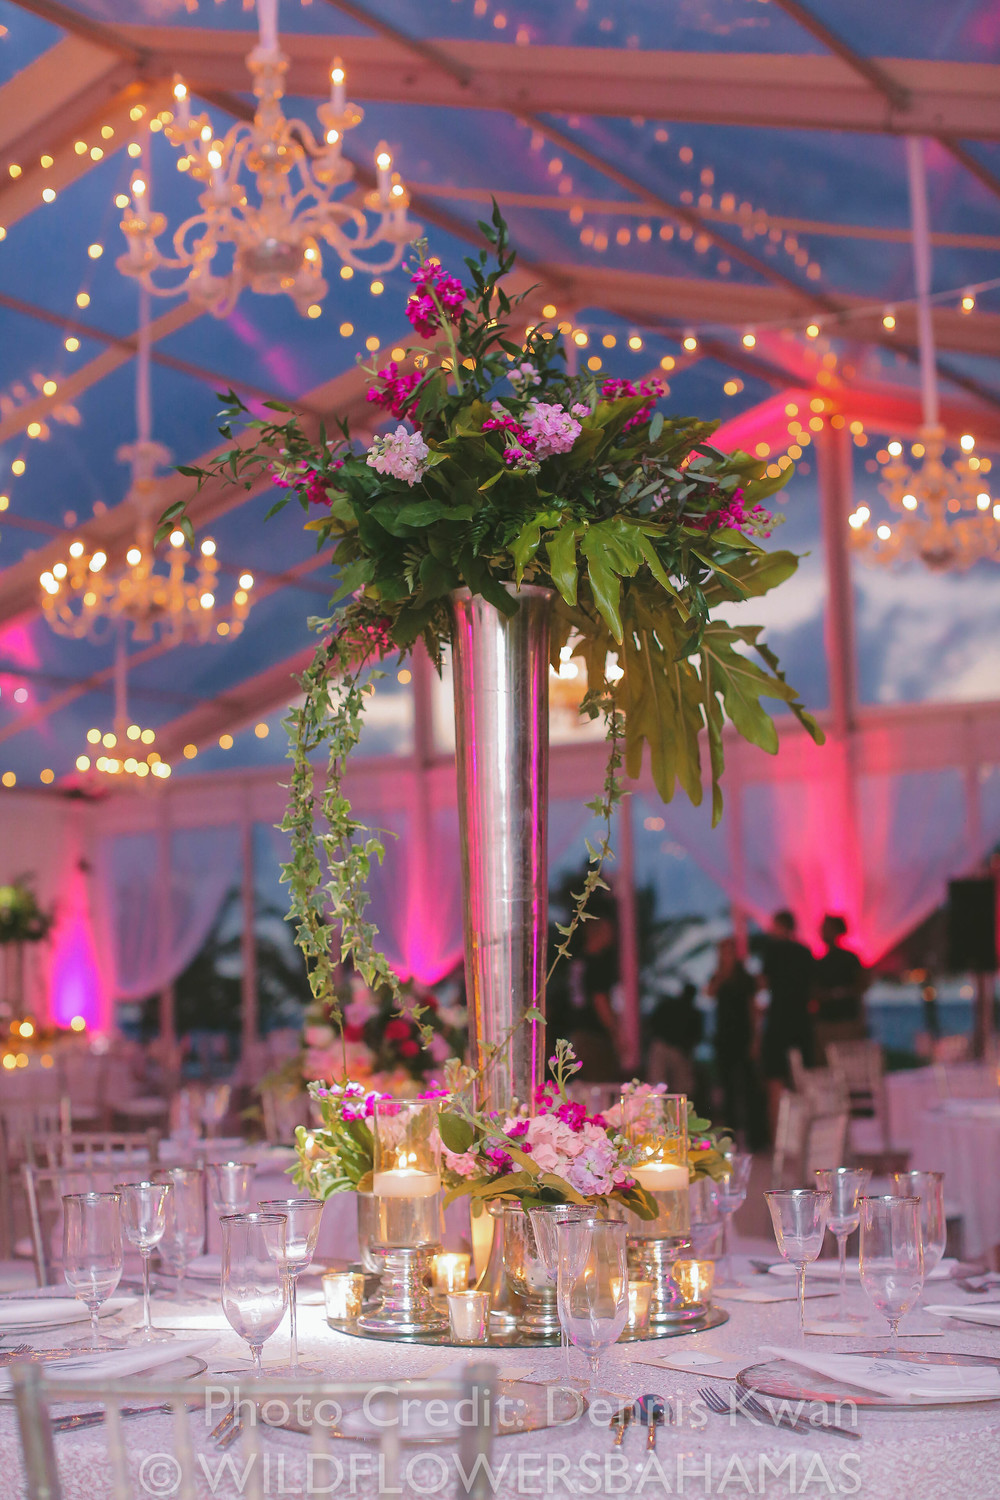 Wildflowers-Bahamas-Weddings-Events-WC025.jpg